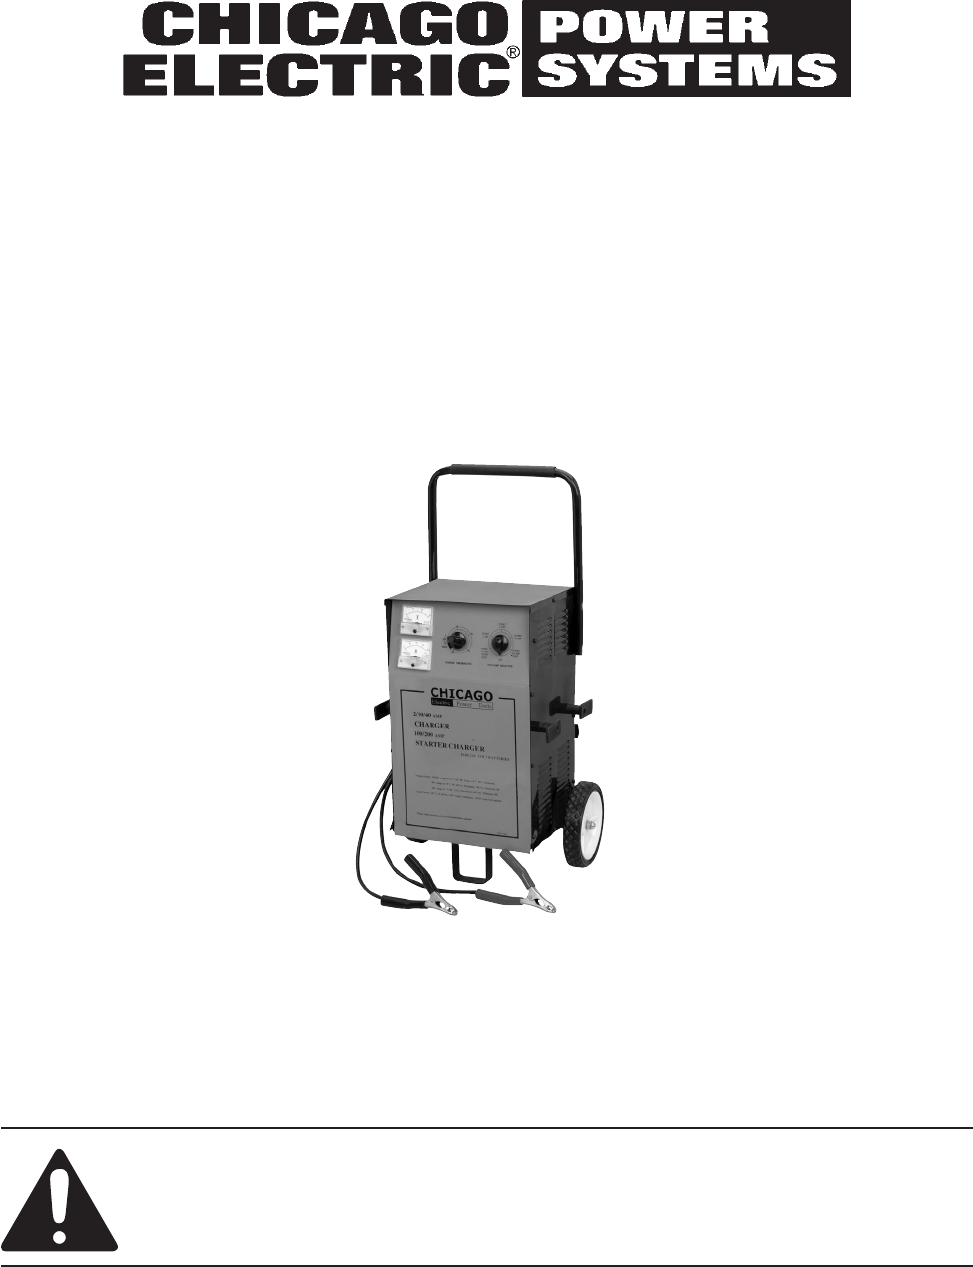 Chicago Electric Battery Charger 46944 User Guide | ManualsOnline.comPower Tools Manuals - ManualsOnline.com